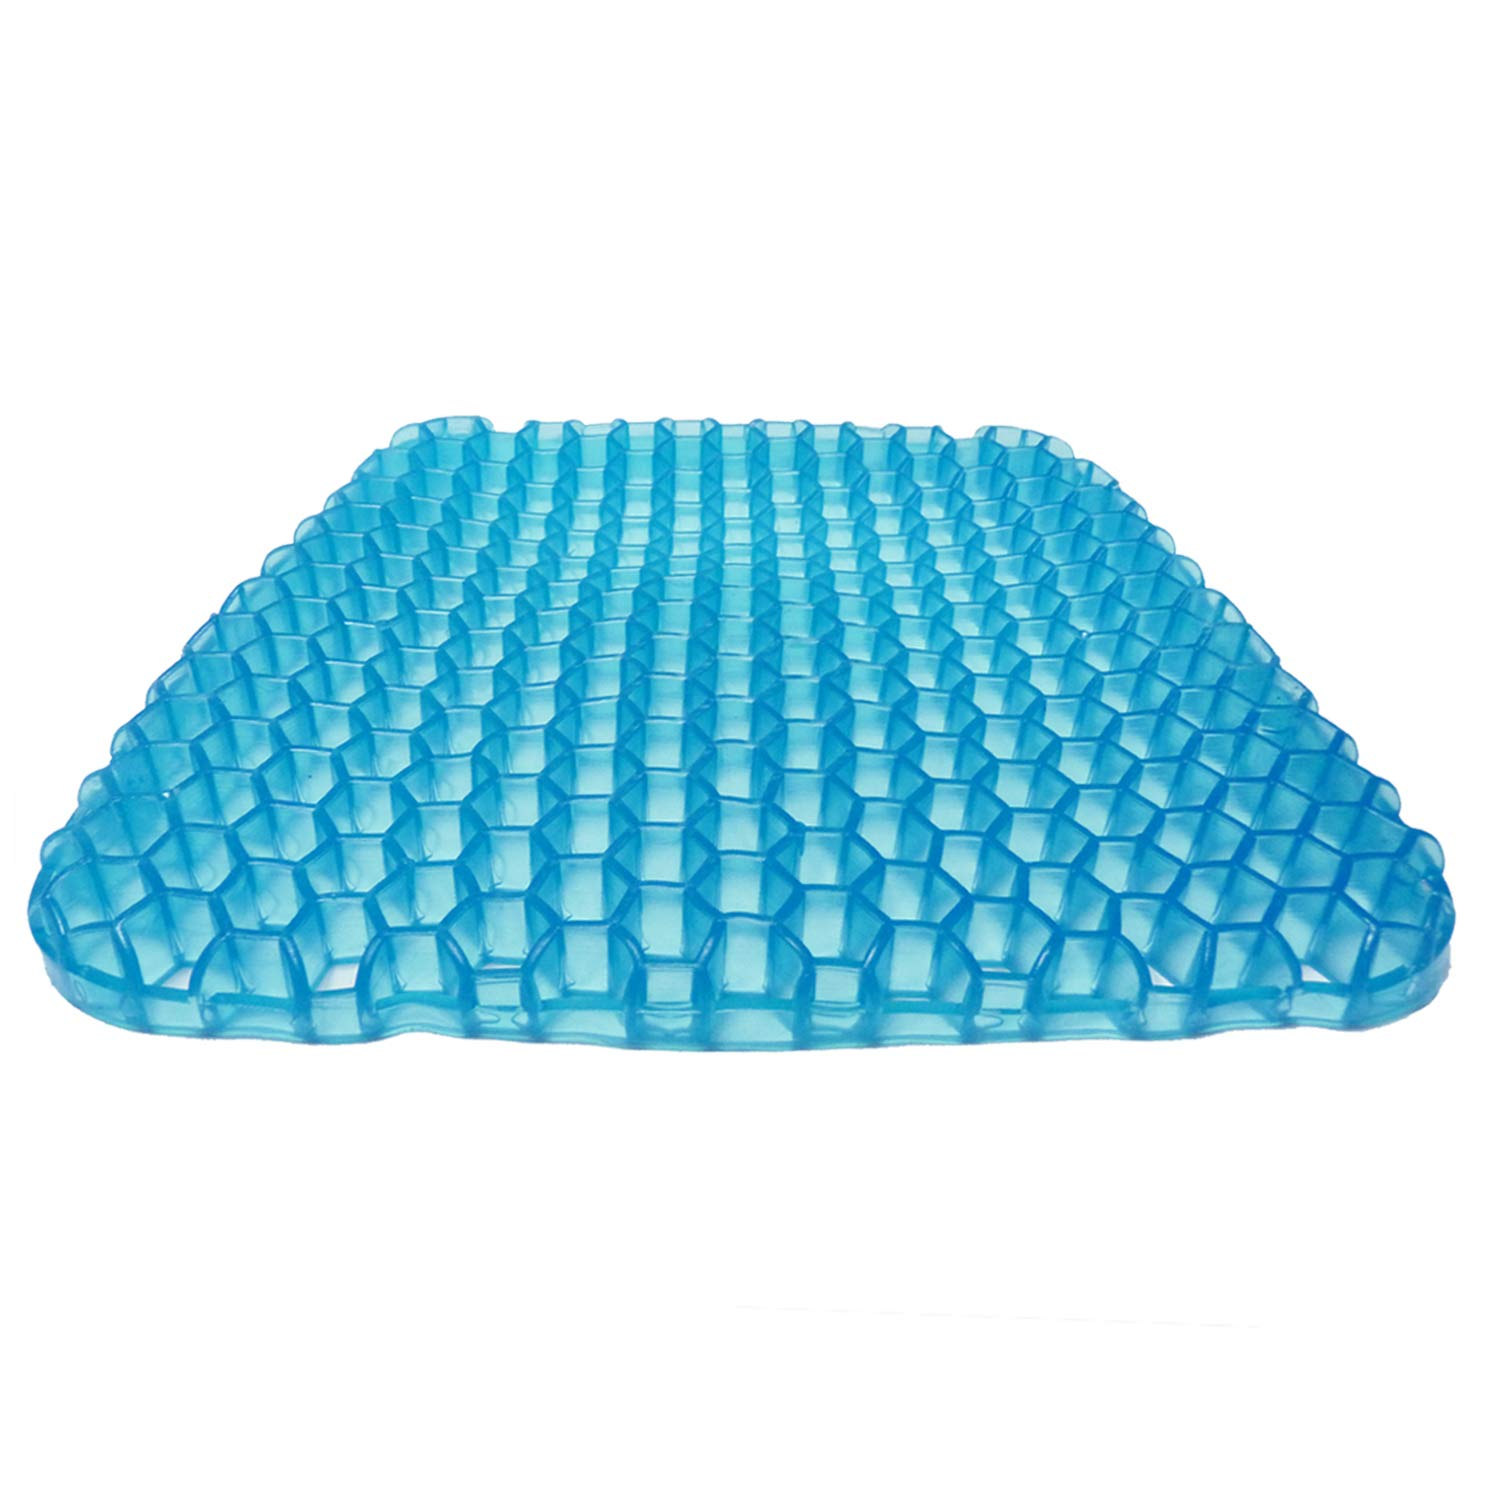 Seseat Gel Seat Cushion Soft Breathable With Non Slip Cover For Chair Office Car Wheelchair Gel